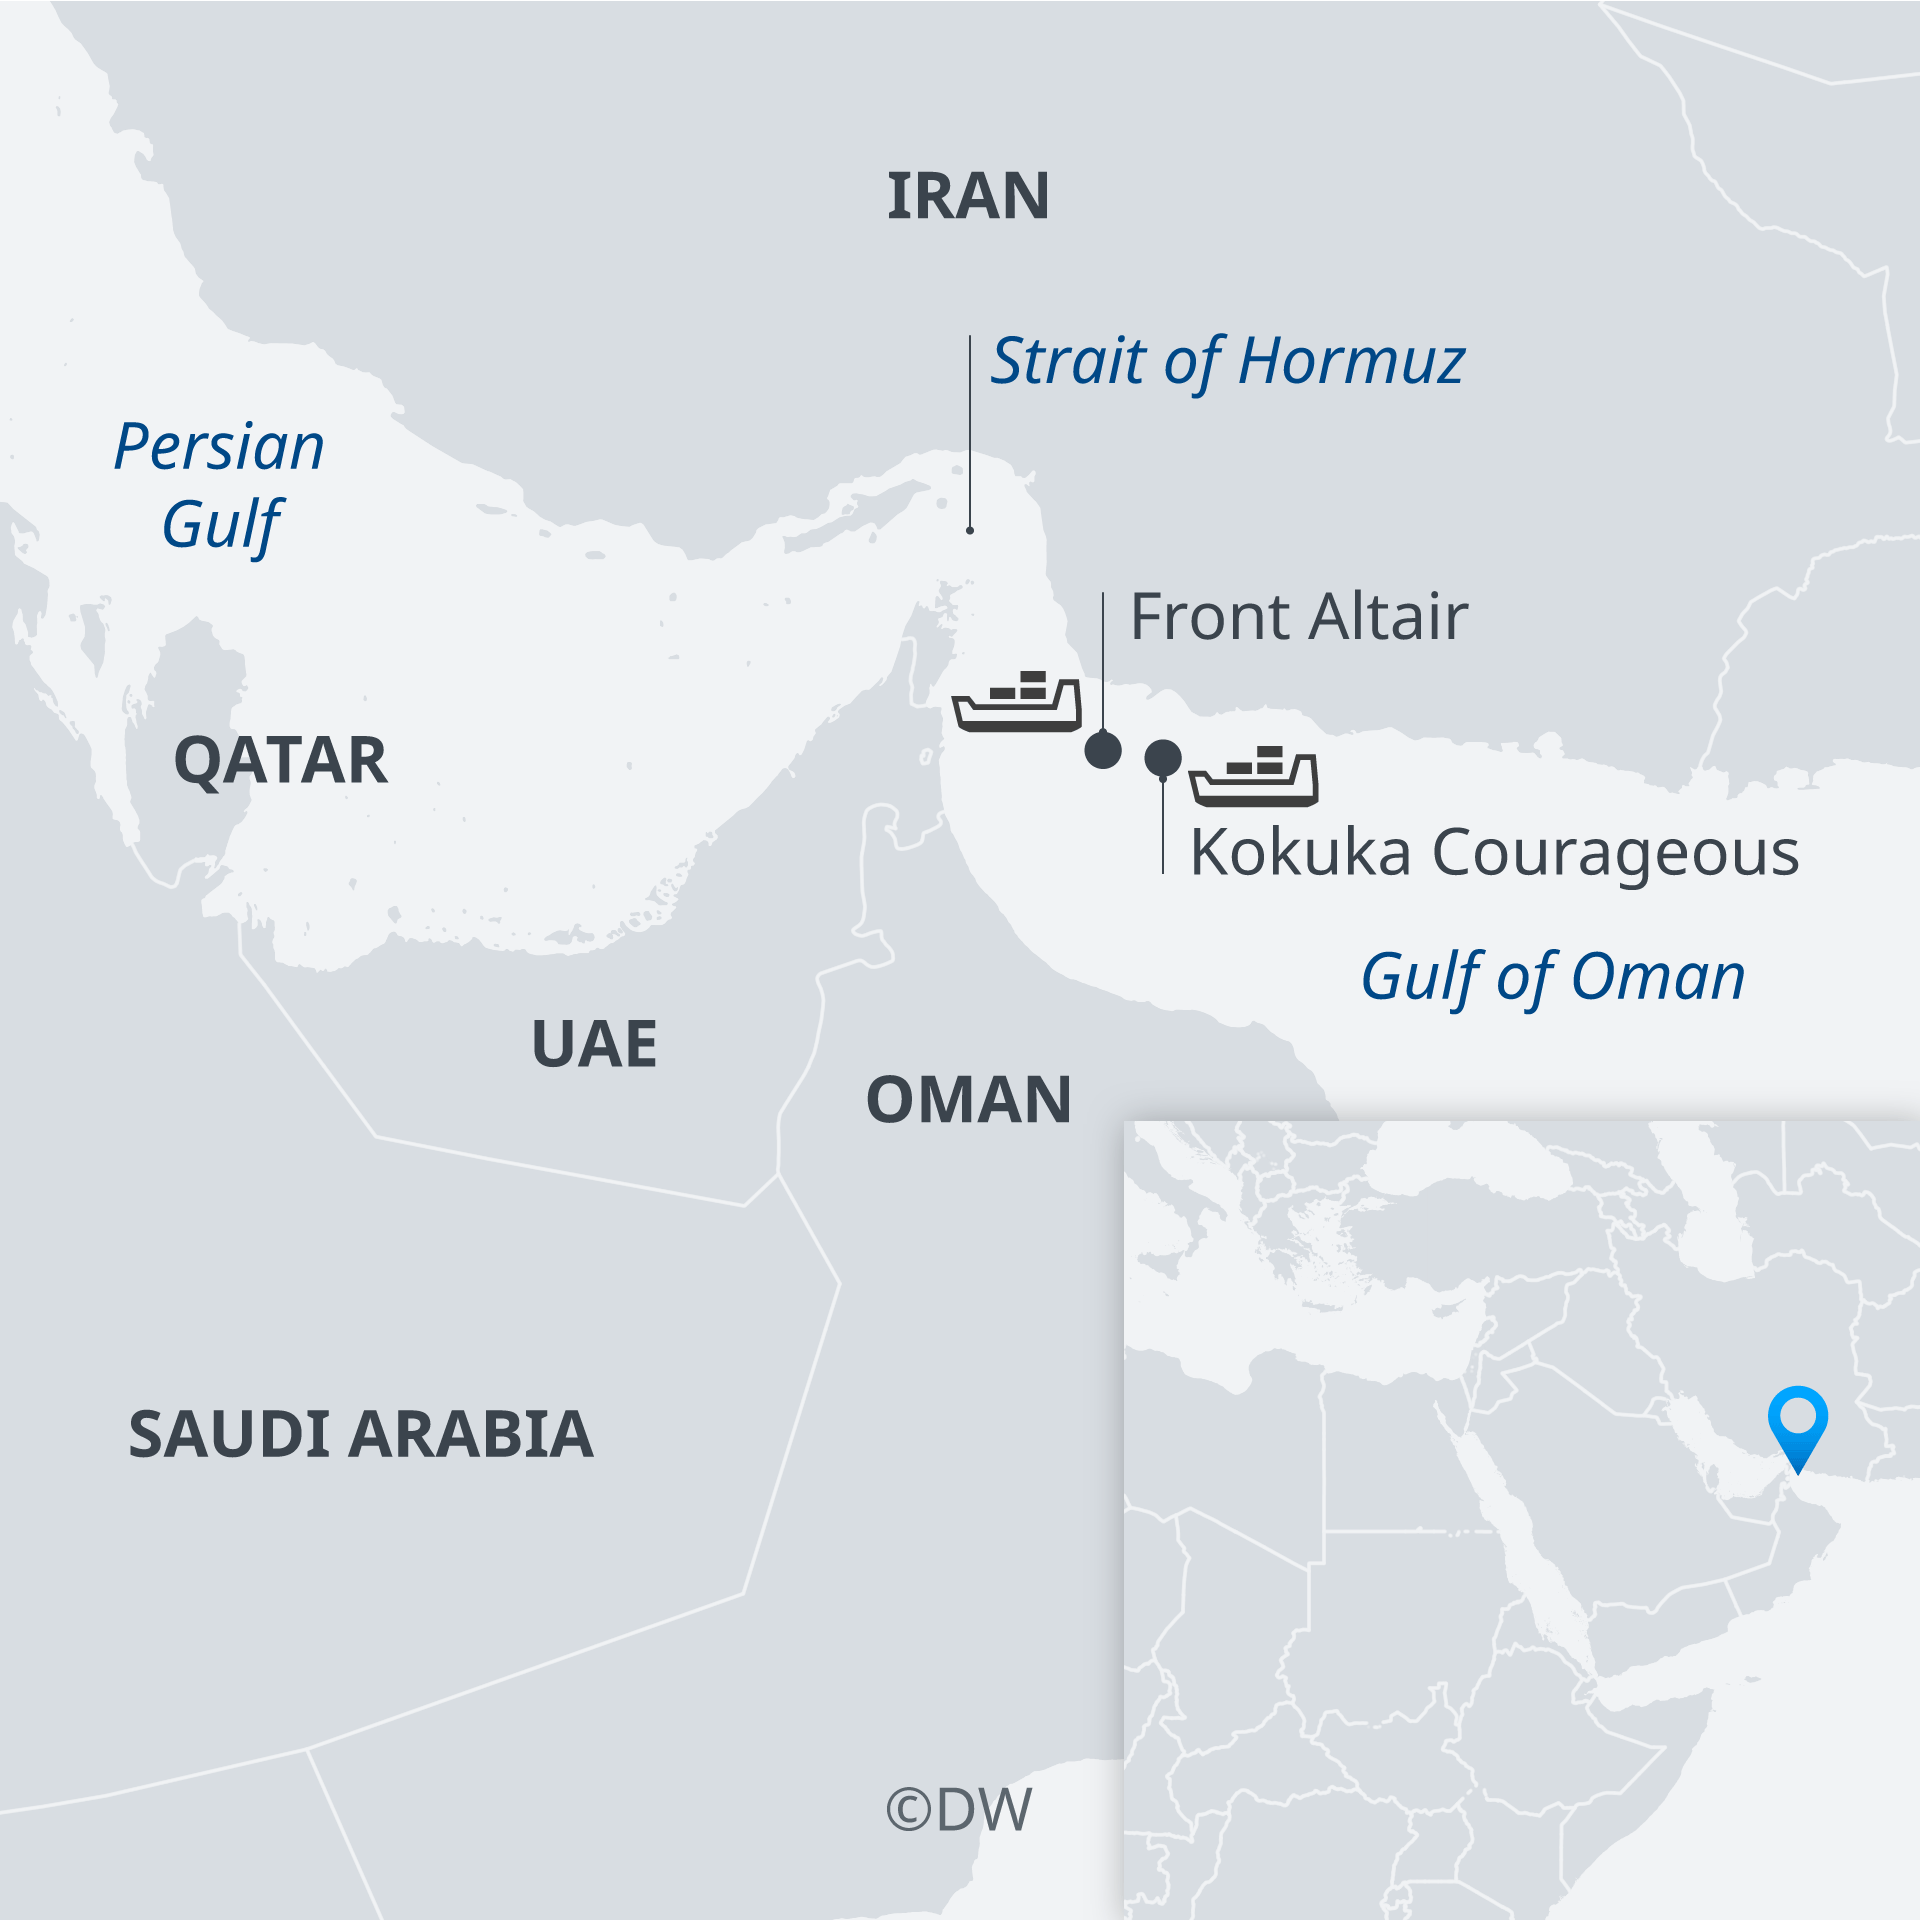 Gulf of Oman map with attack locations